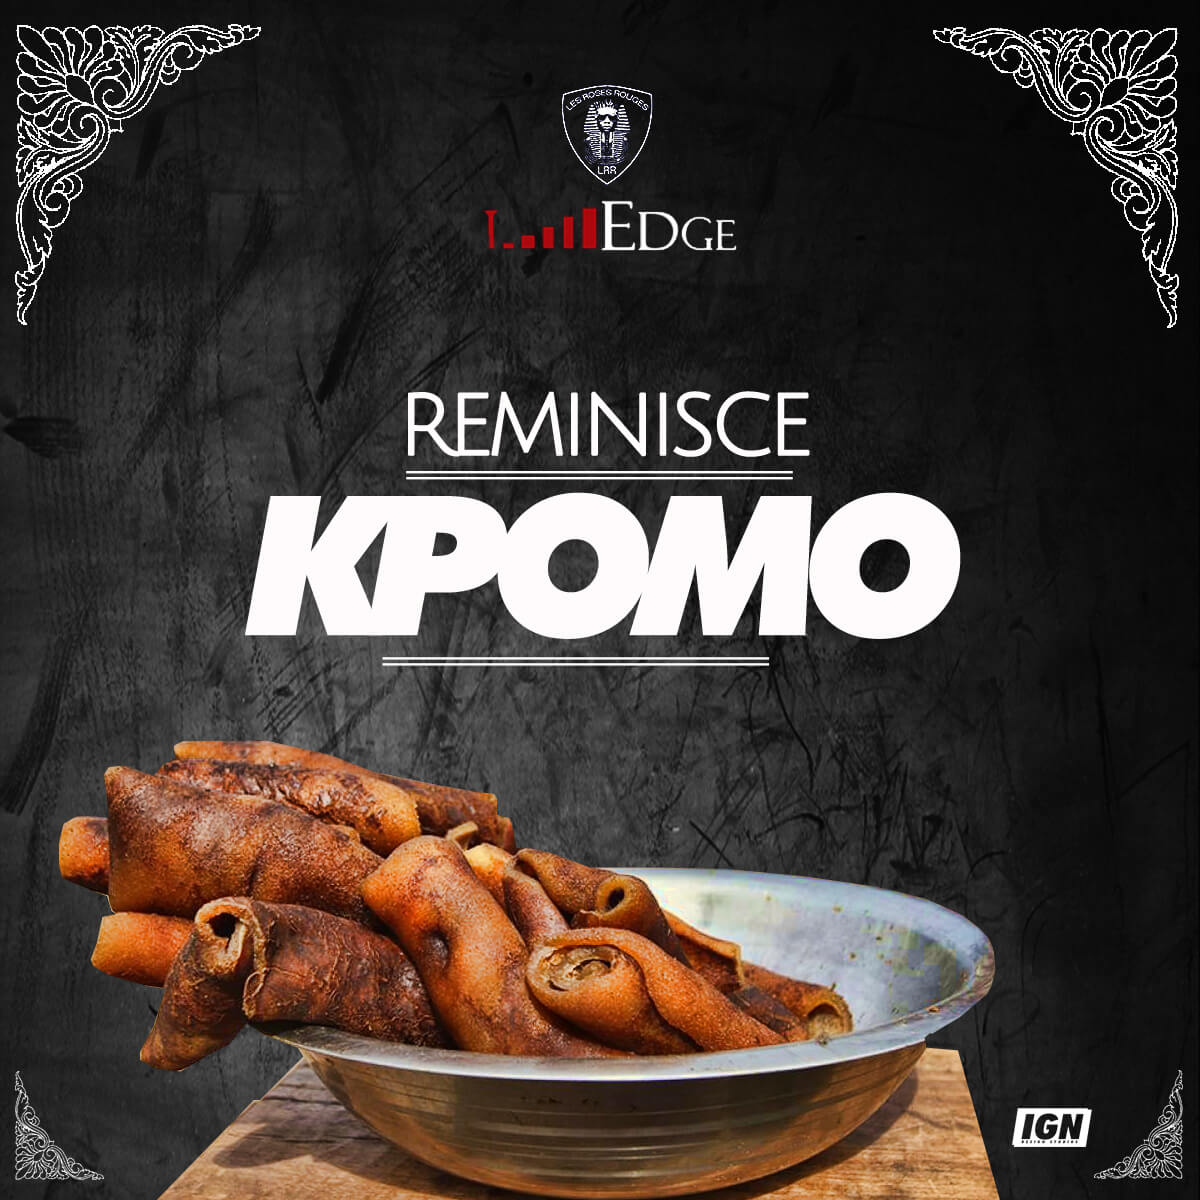 Reminisce – Kpomo (Prod. Tyce) [New Song]